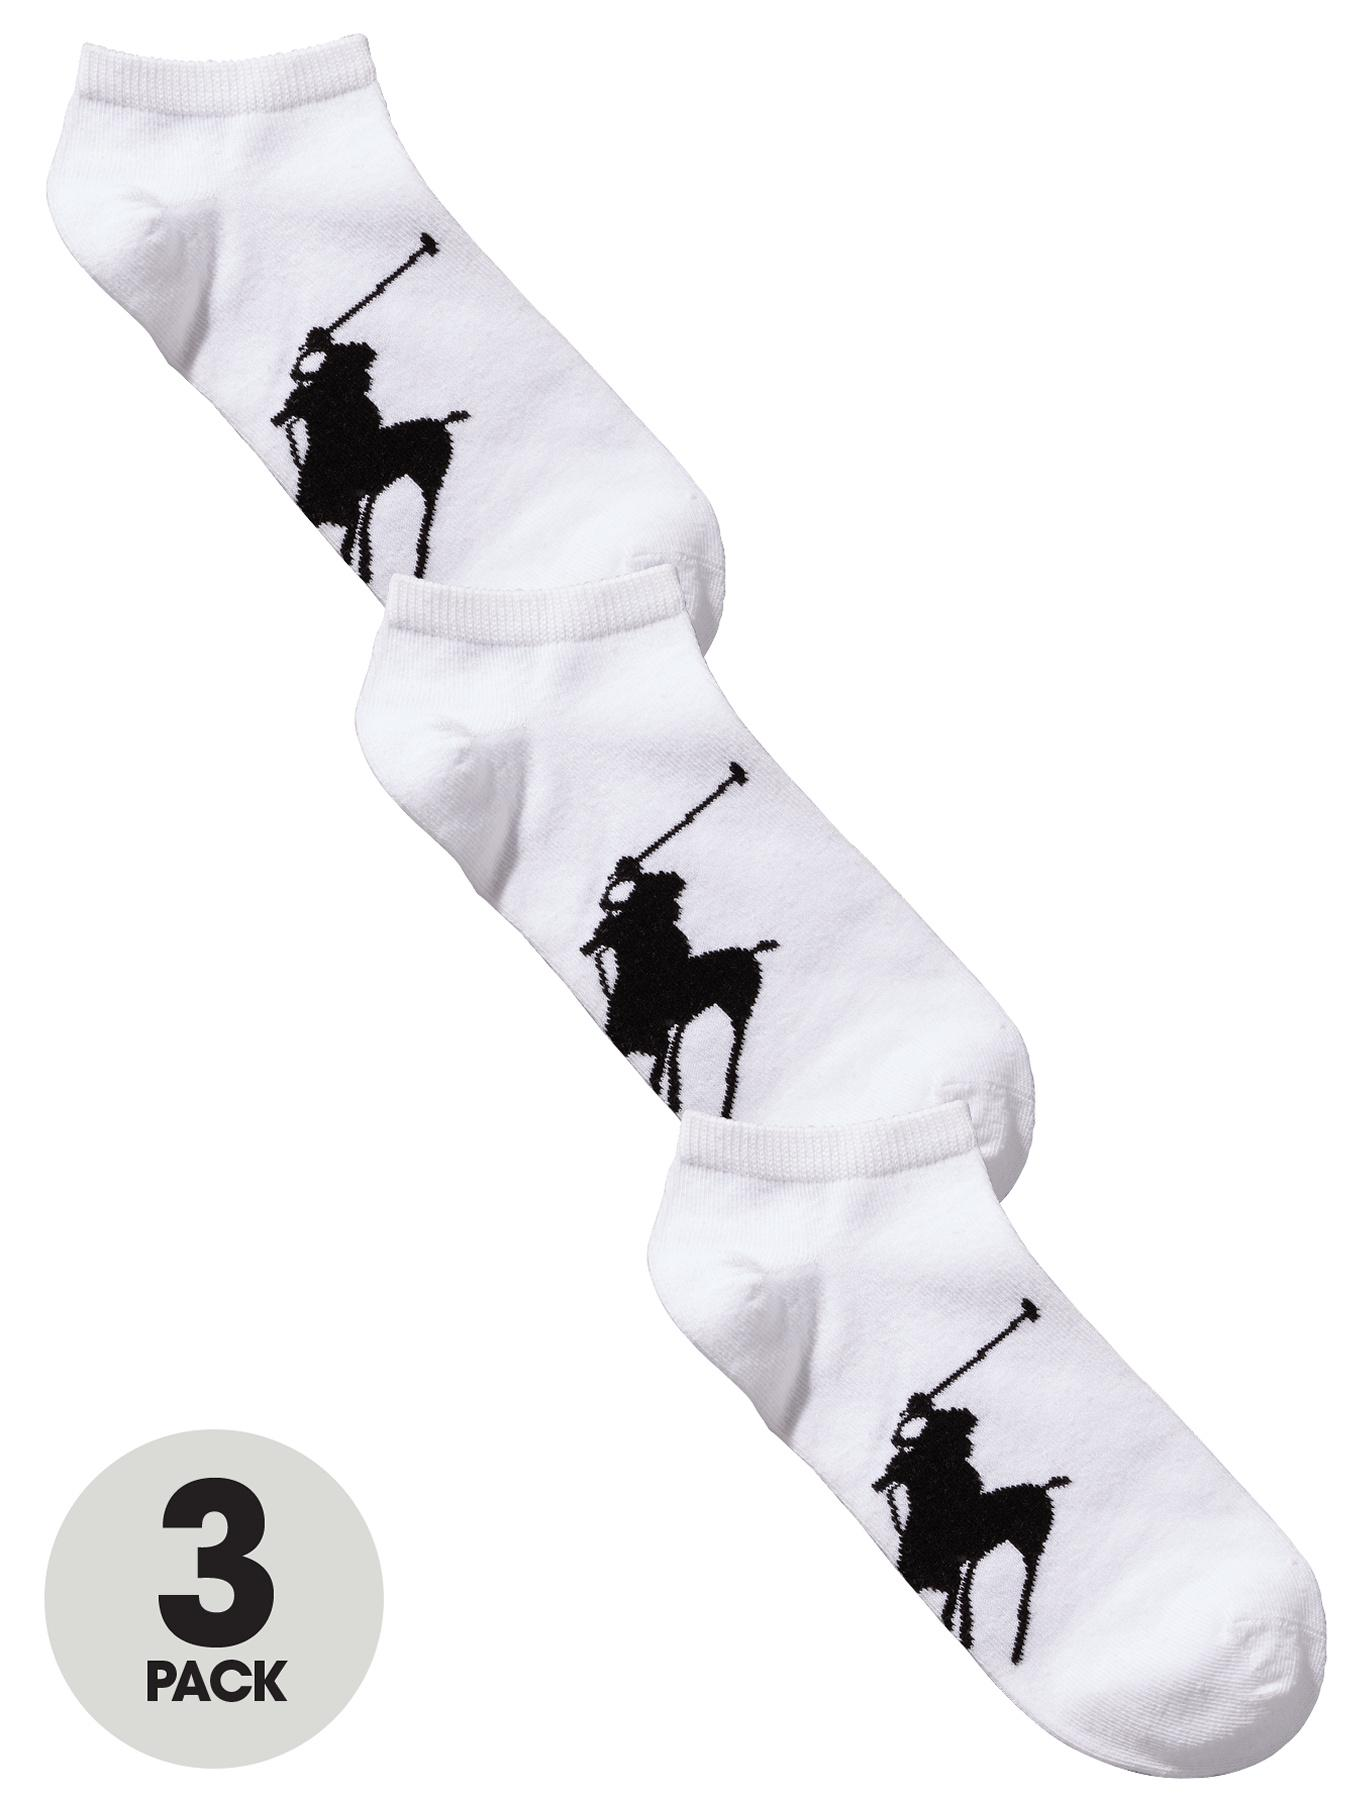 Polo Ralph Lauren Mens Trainer Socks (3 Pack) - White, White